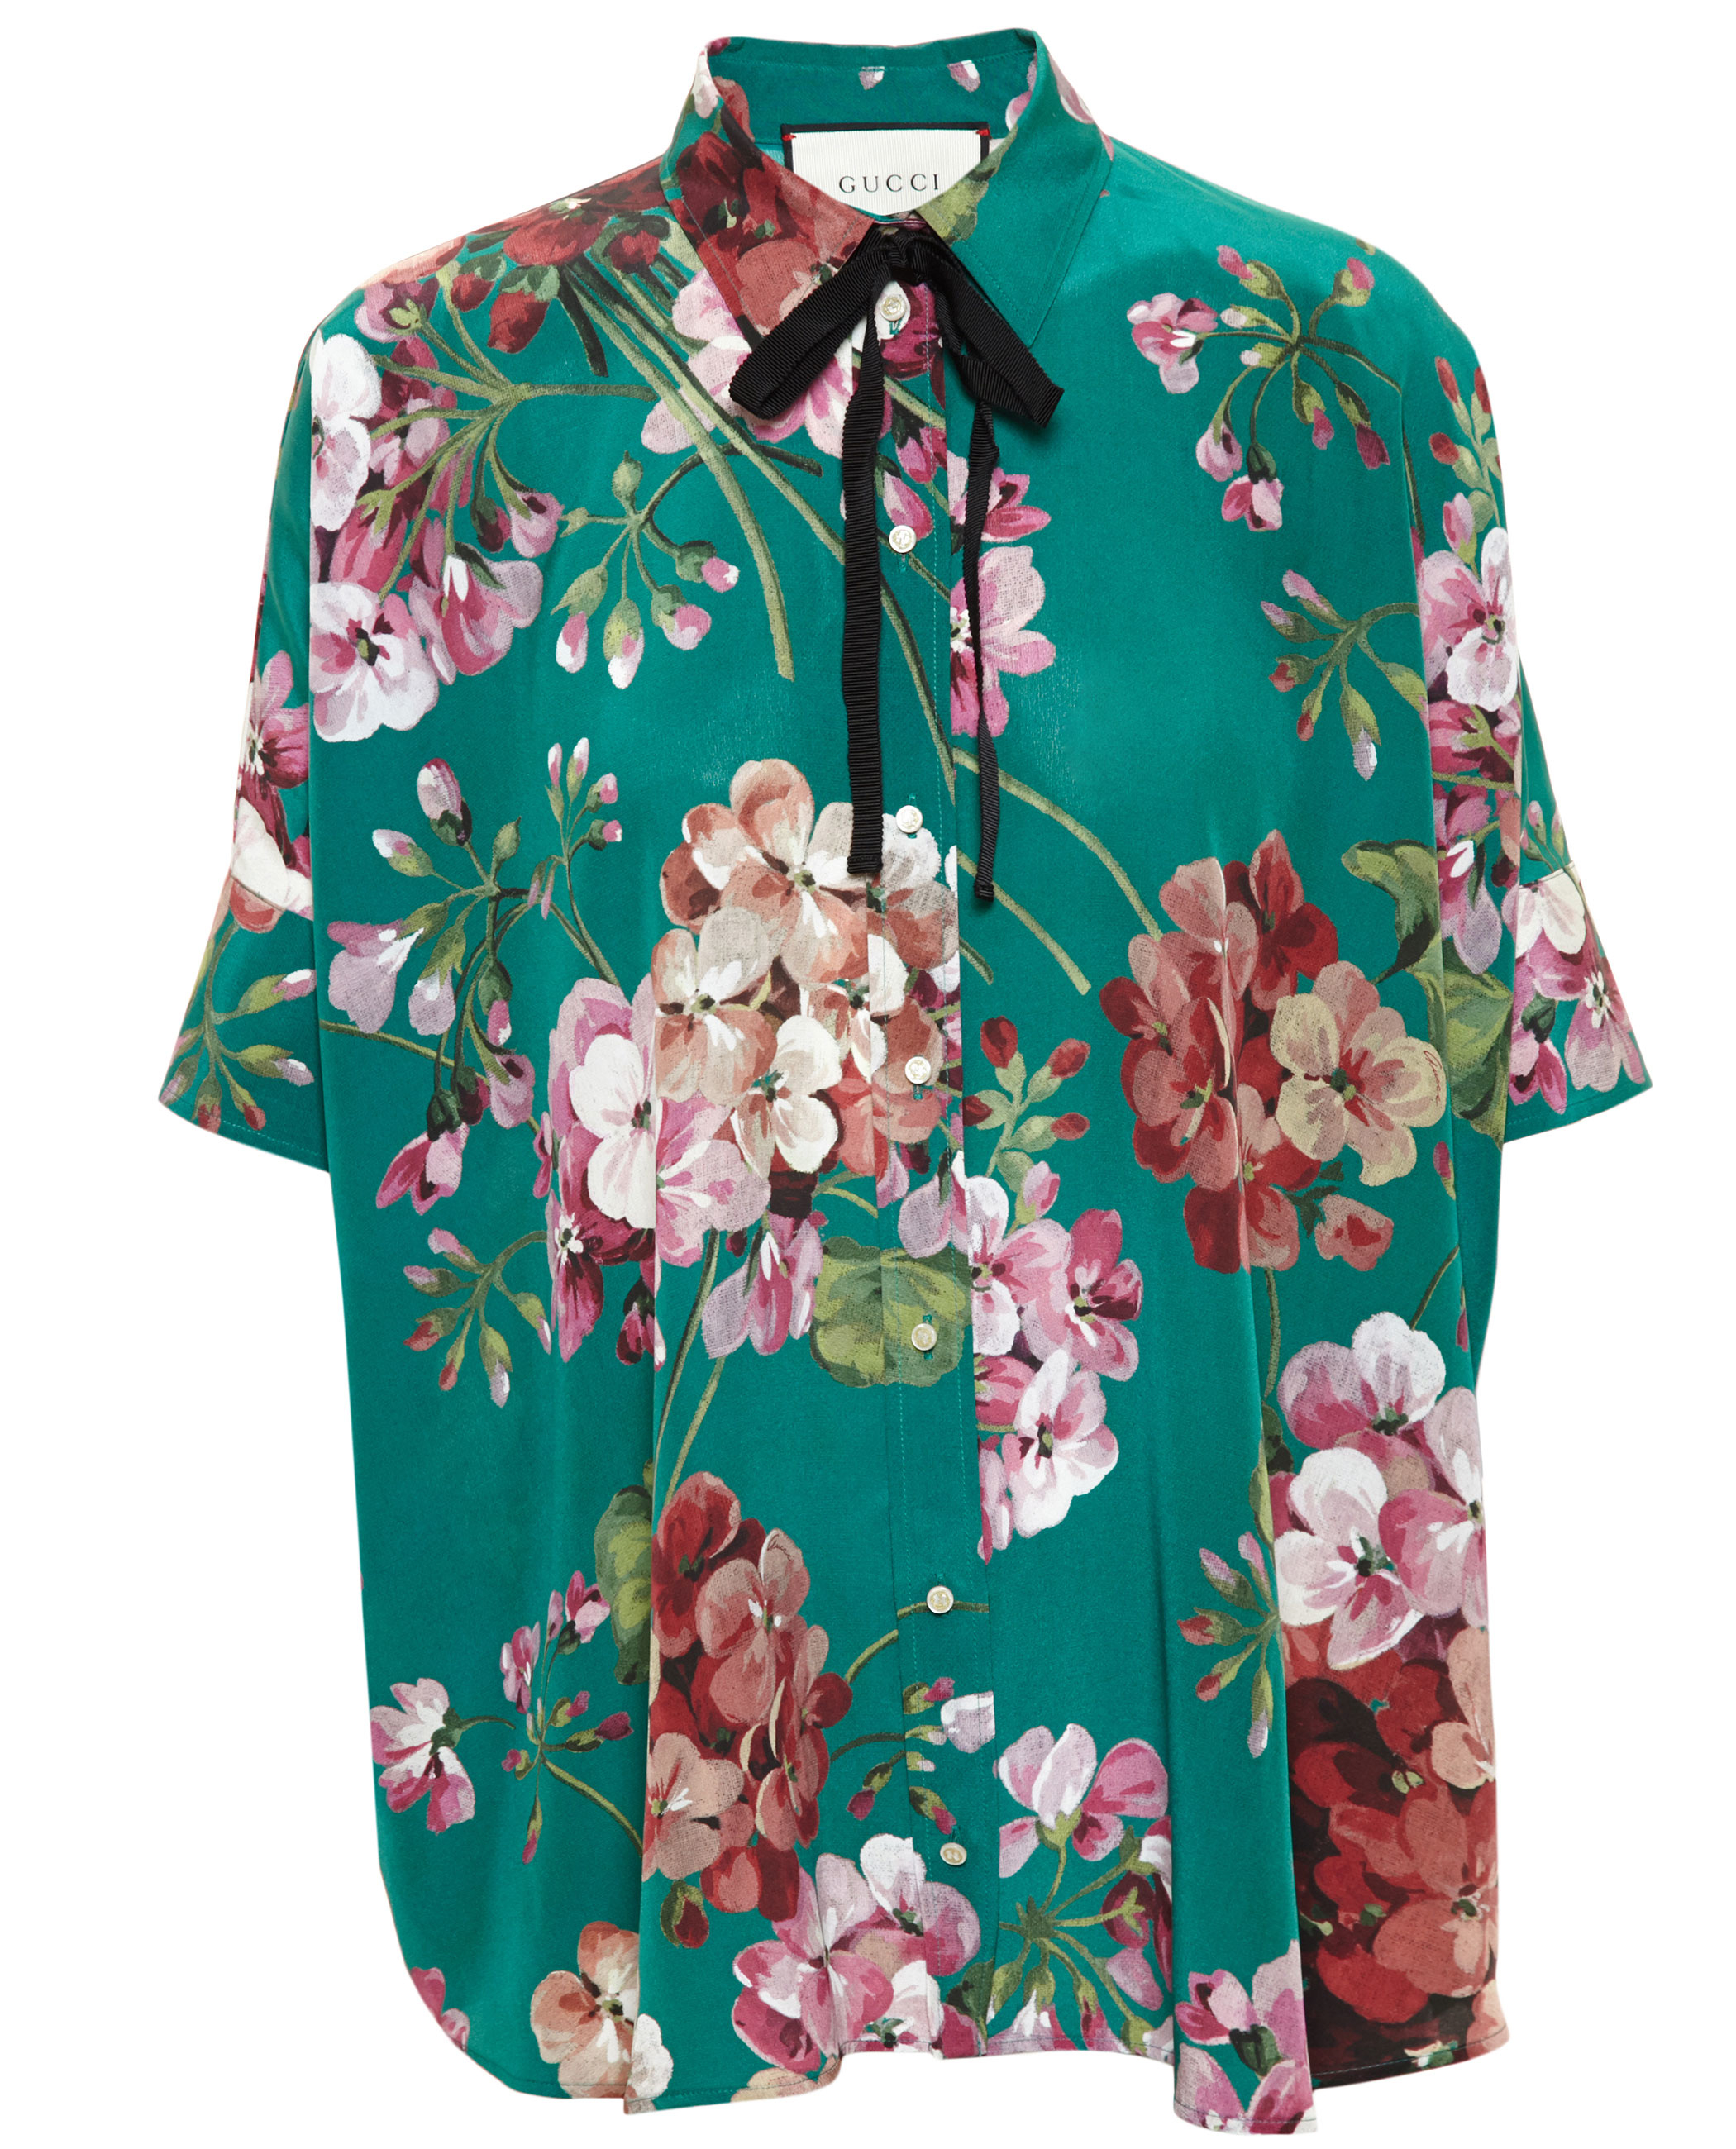 0cb70184fe76 Lyst - Gucci Floral Printed Crepe Shirt